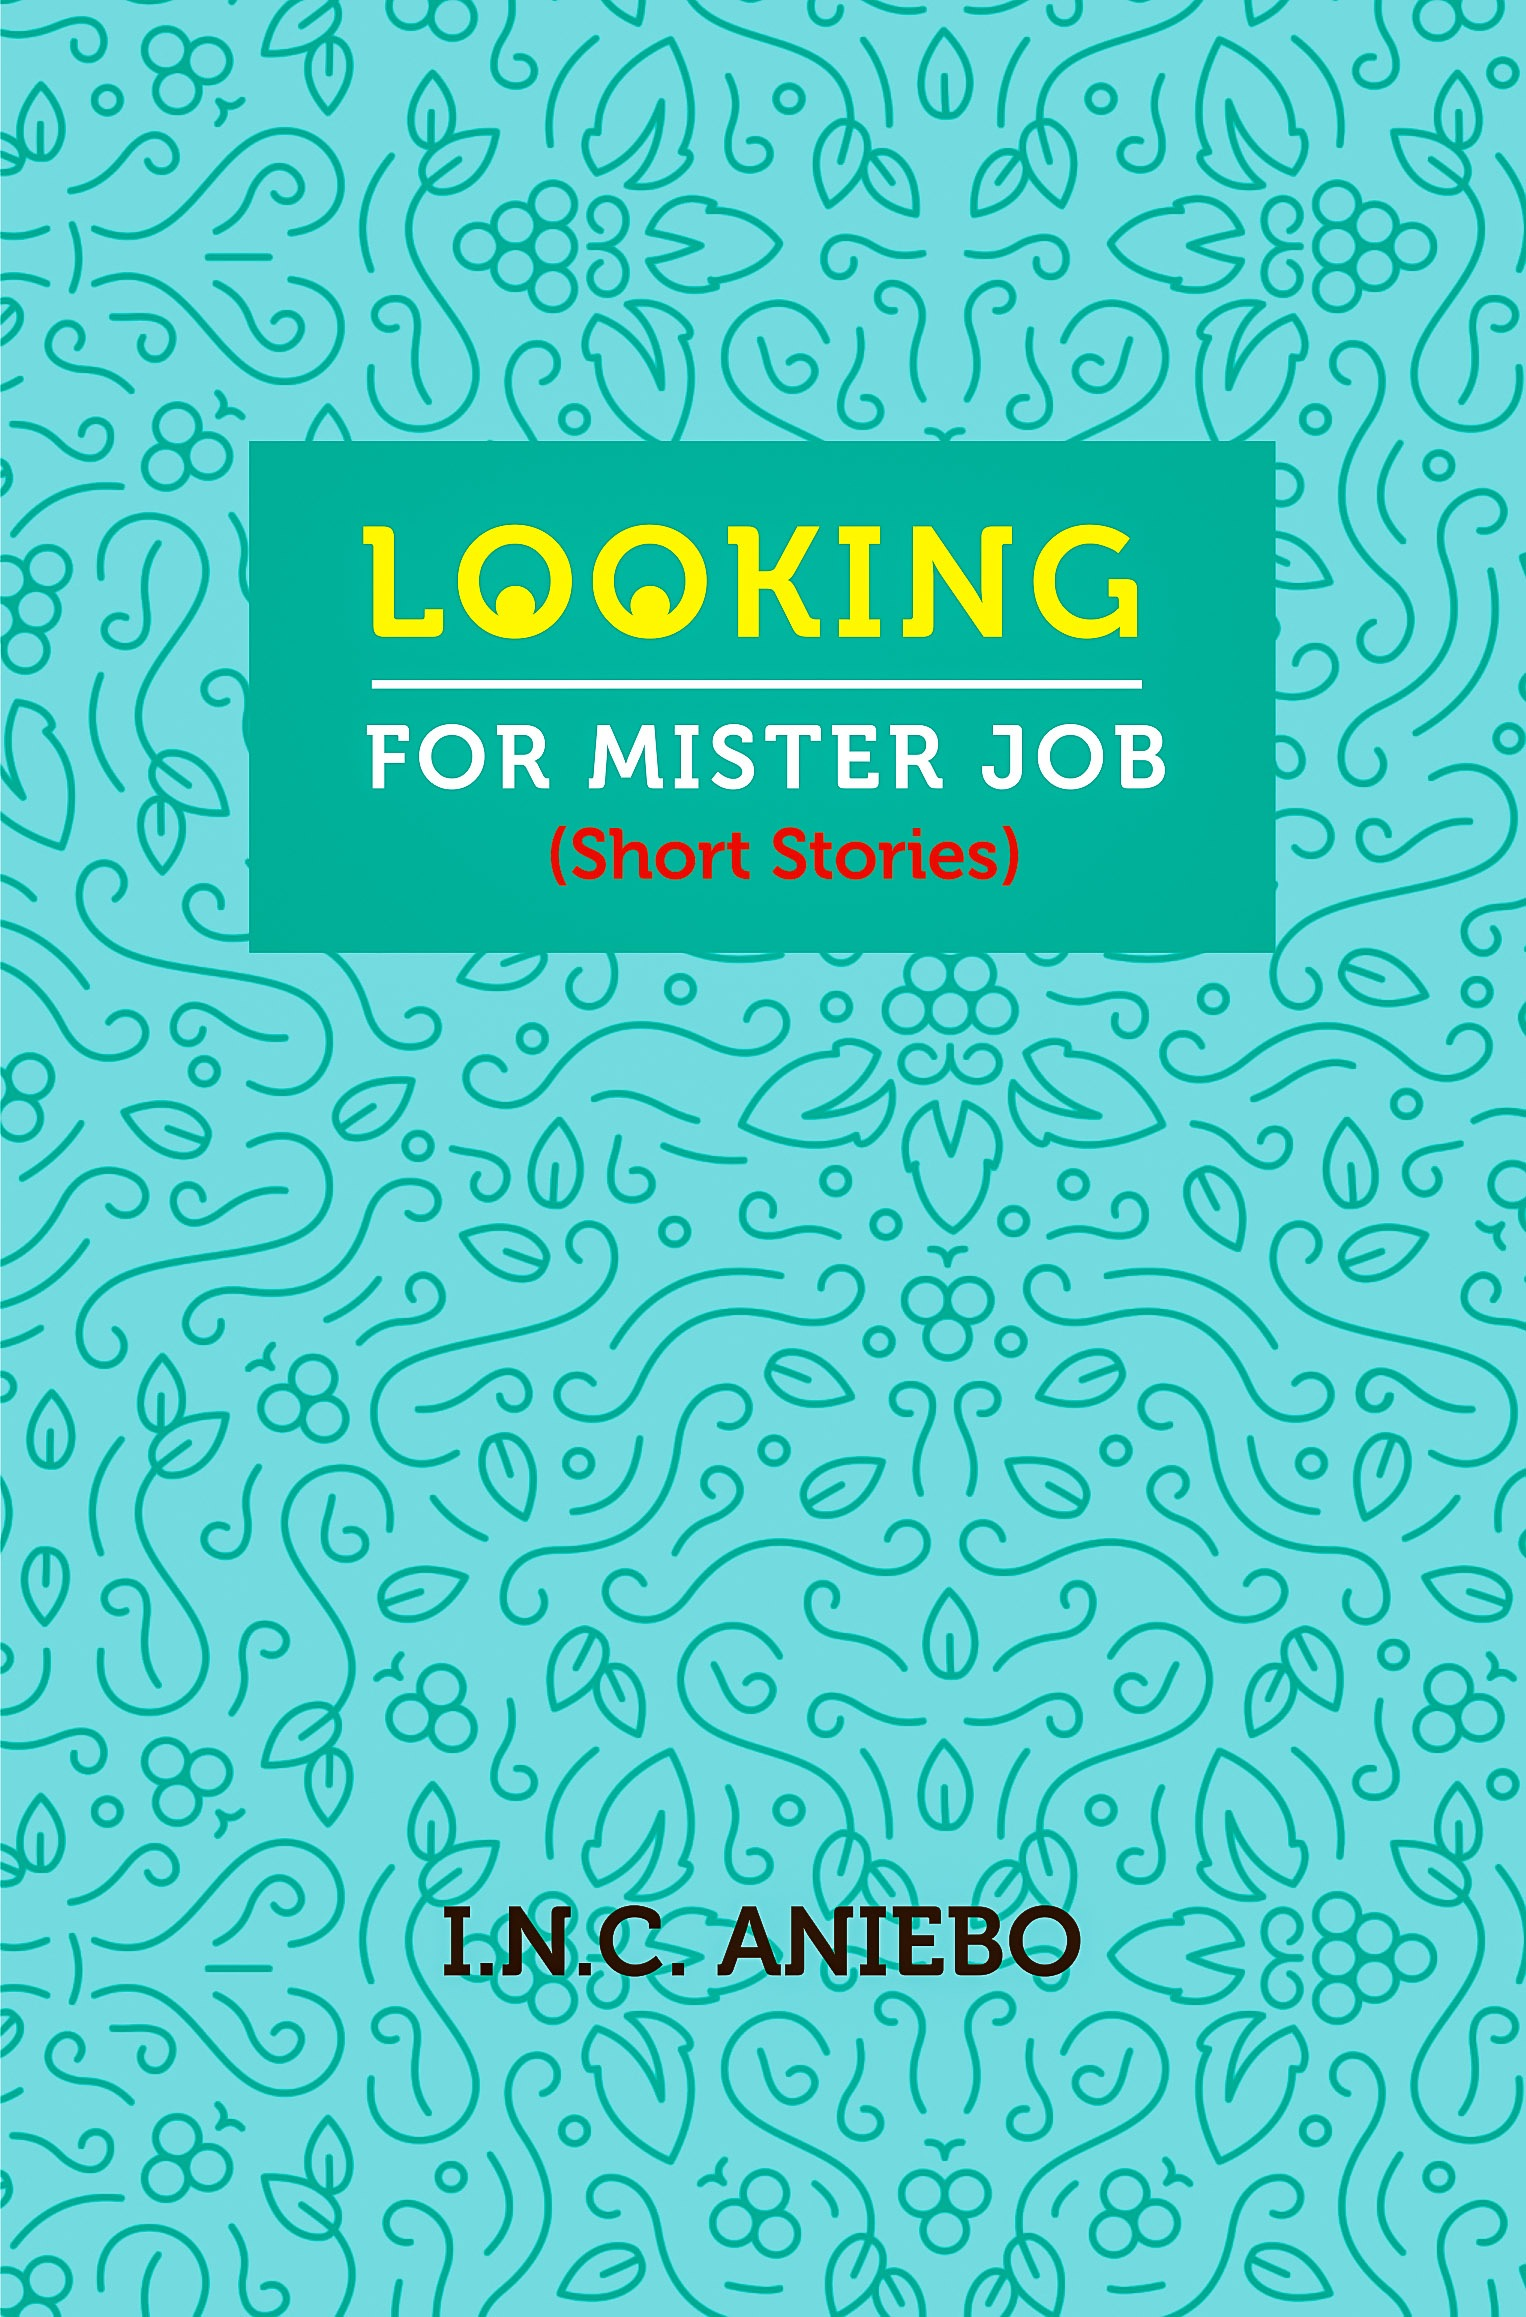 Looking for Mister Job